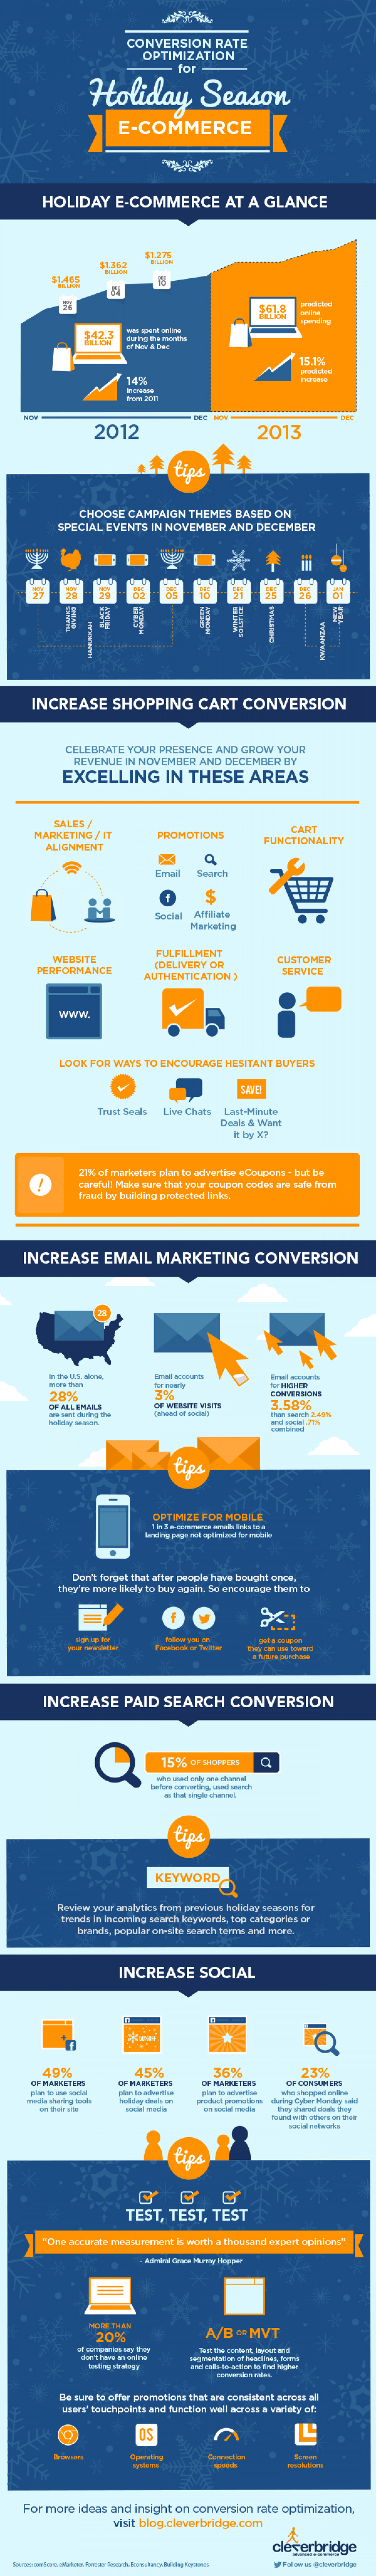 Conversion Rate Optimization for Holiday Season E-Commerce Infographic